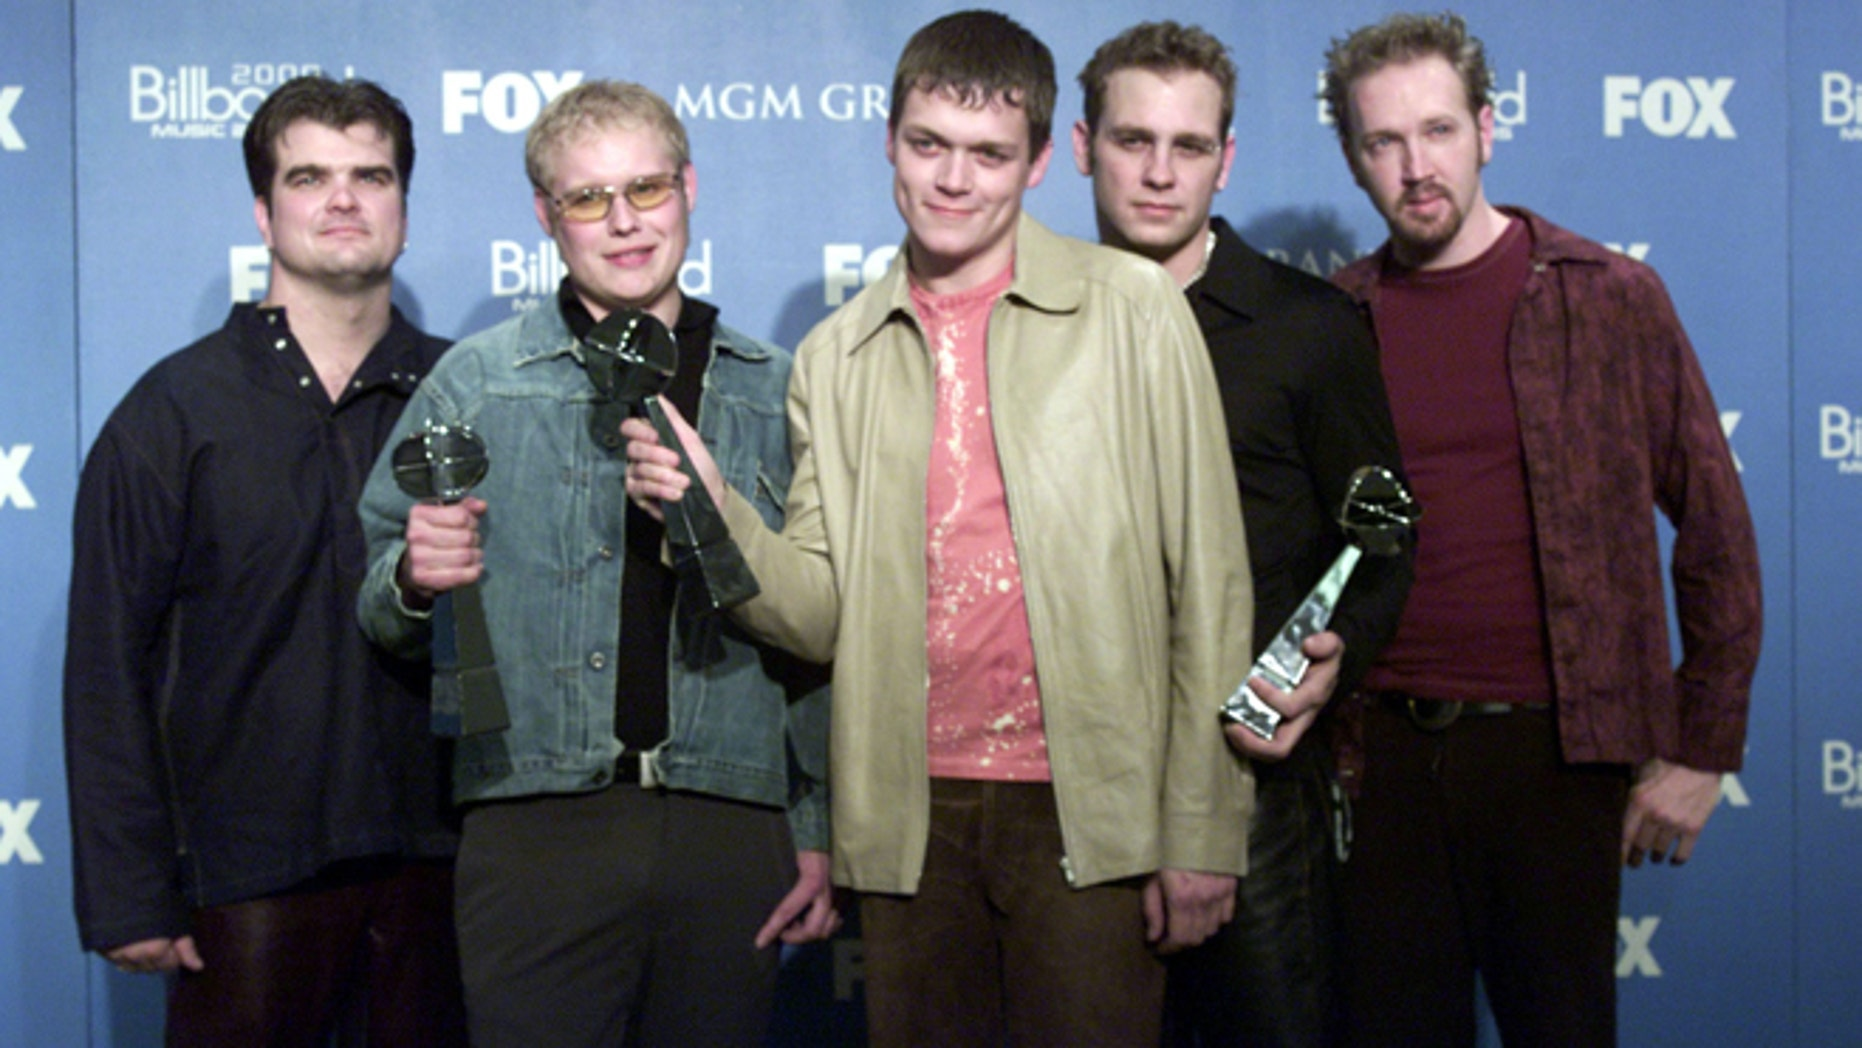 """Dec. 5, 2000: Members of the pop music group """" 3 Doors Down """" (L-R) Chris Henderson, Matt Roberts, Brad Arnold, Todd Harrell and Rich Liles pose for photographers with their award for Rock Track of the year for """" Kryptonite"""" at the 2000 Billboard Music Awards at the MGM Grand in Las Vegas."""